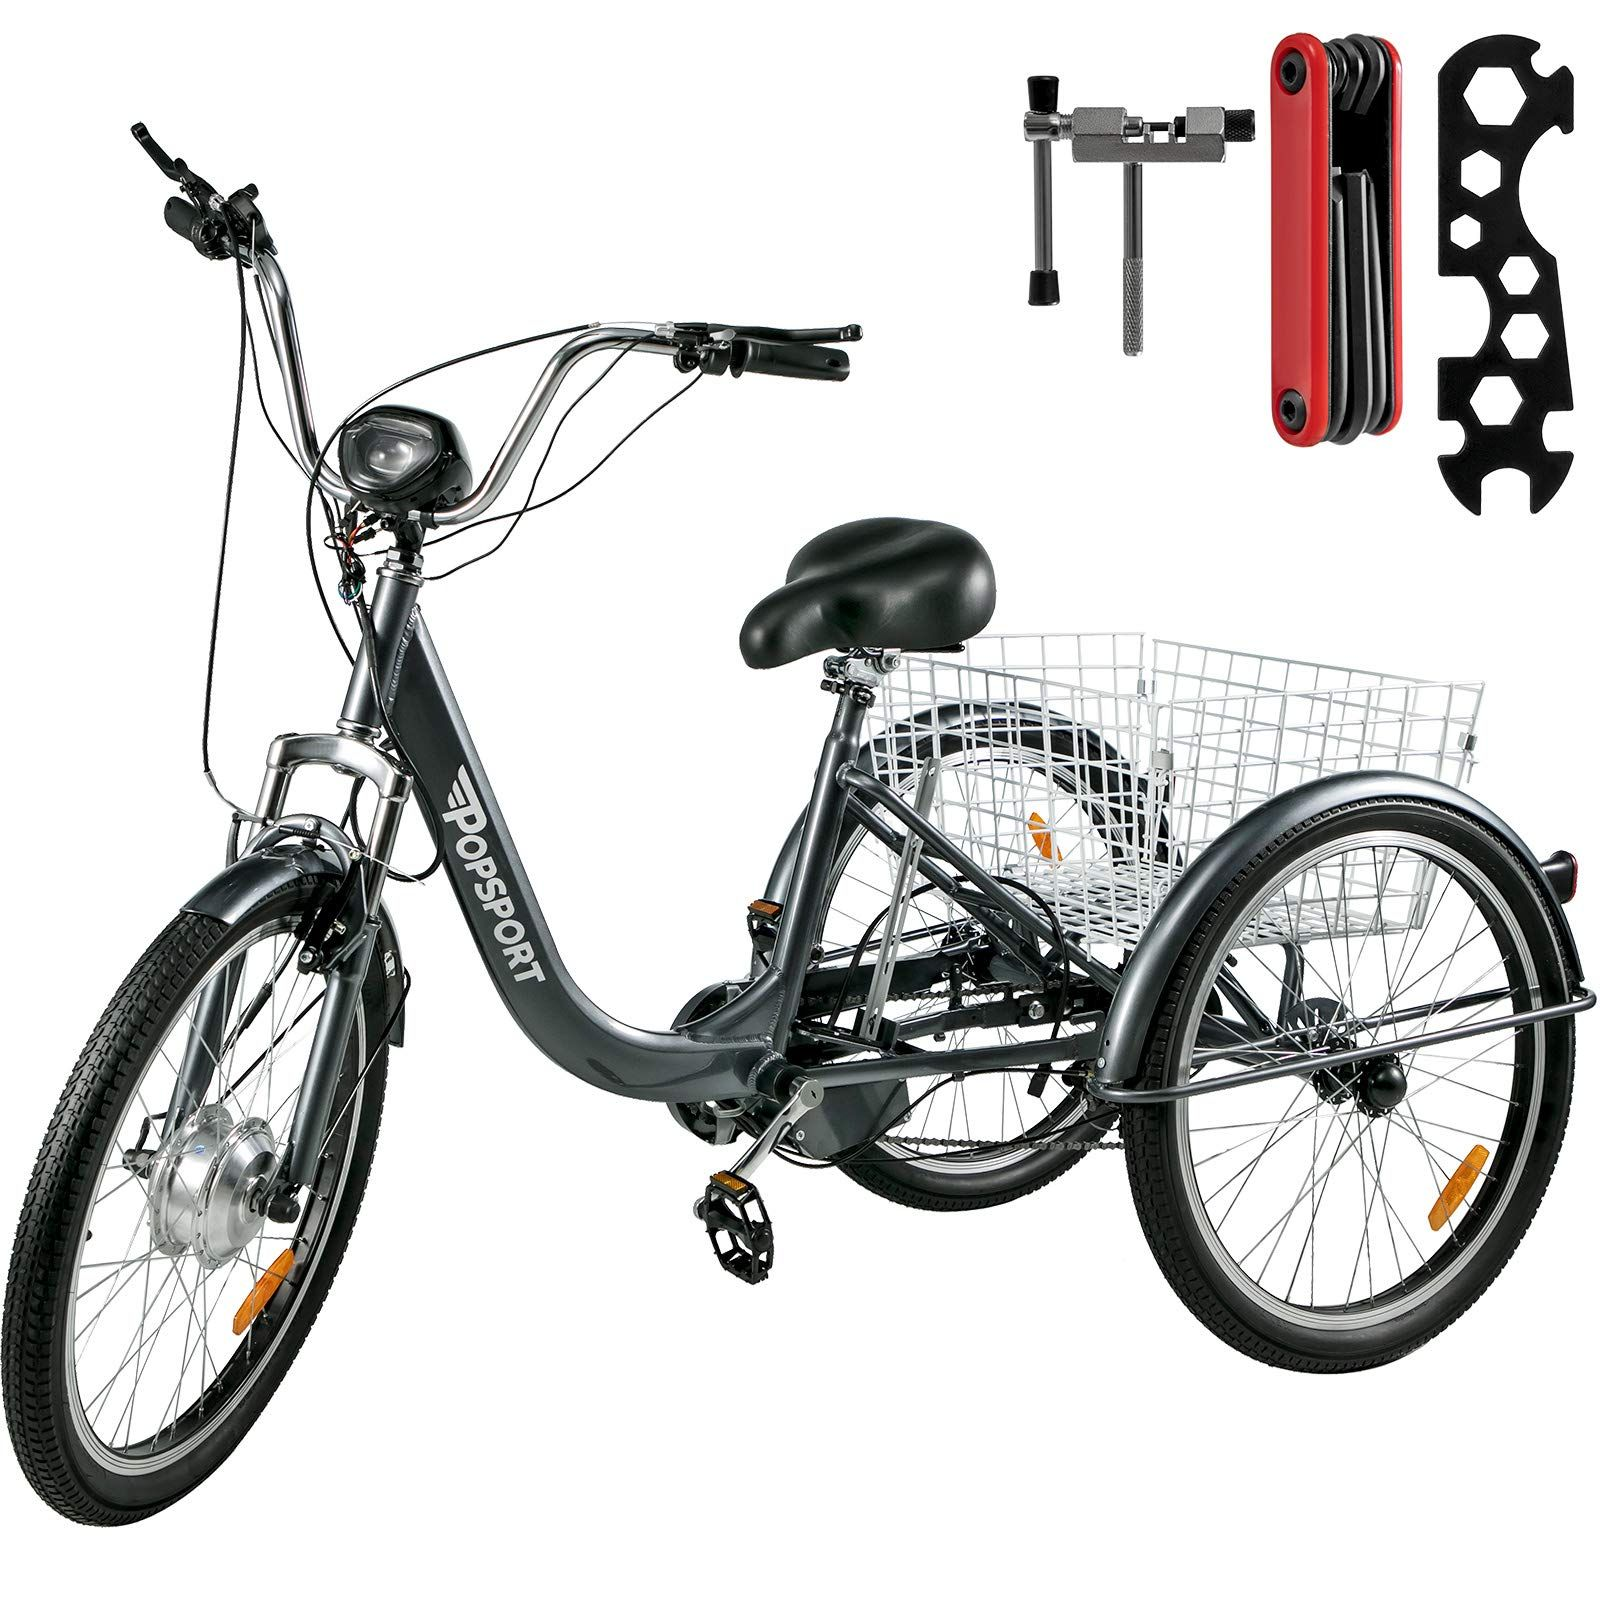 Mophorn Adult Electric Motorized Trike 7 Speed Tricycle